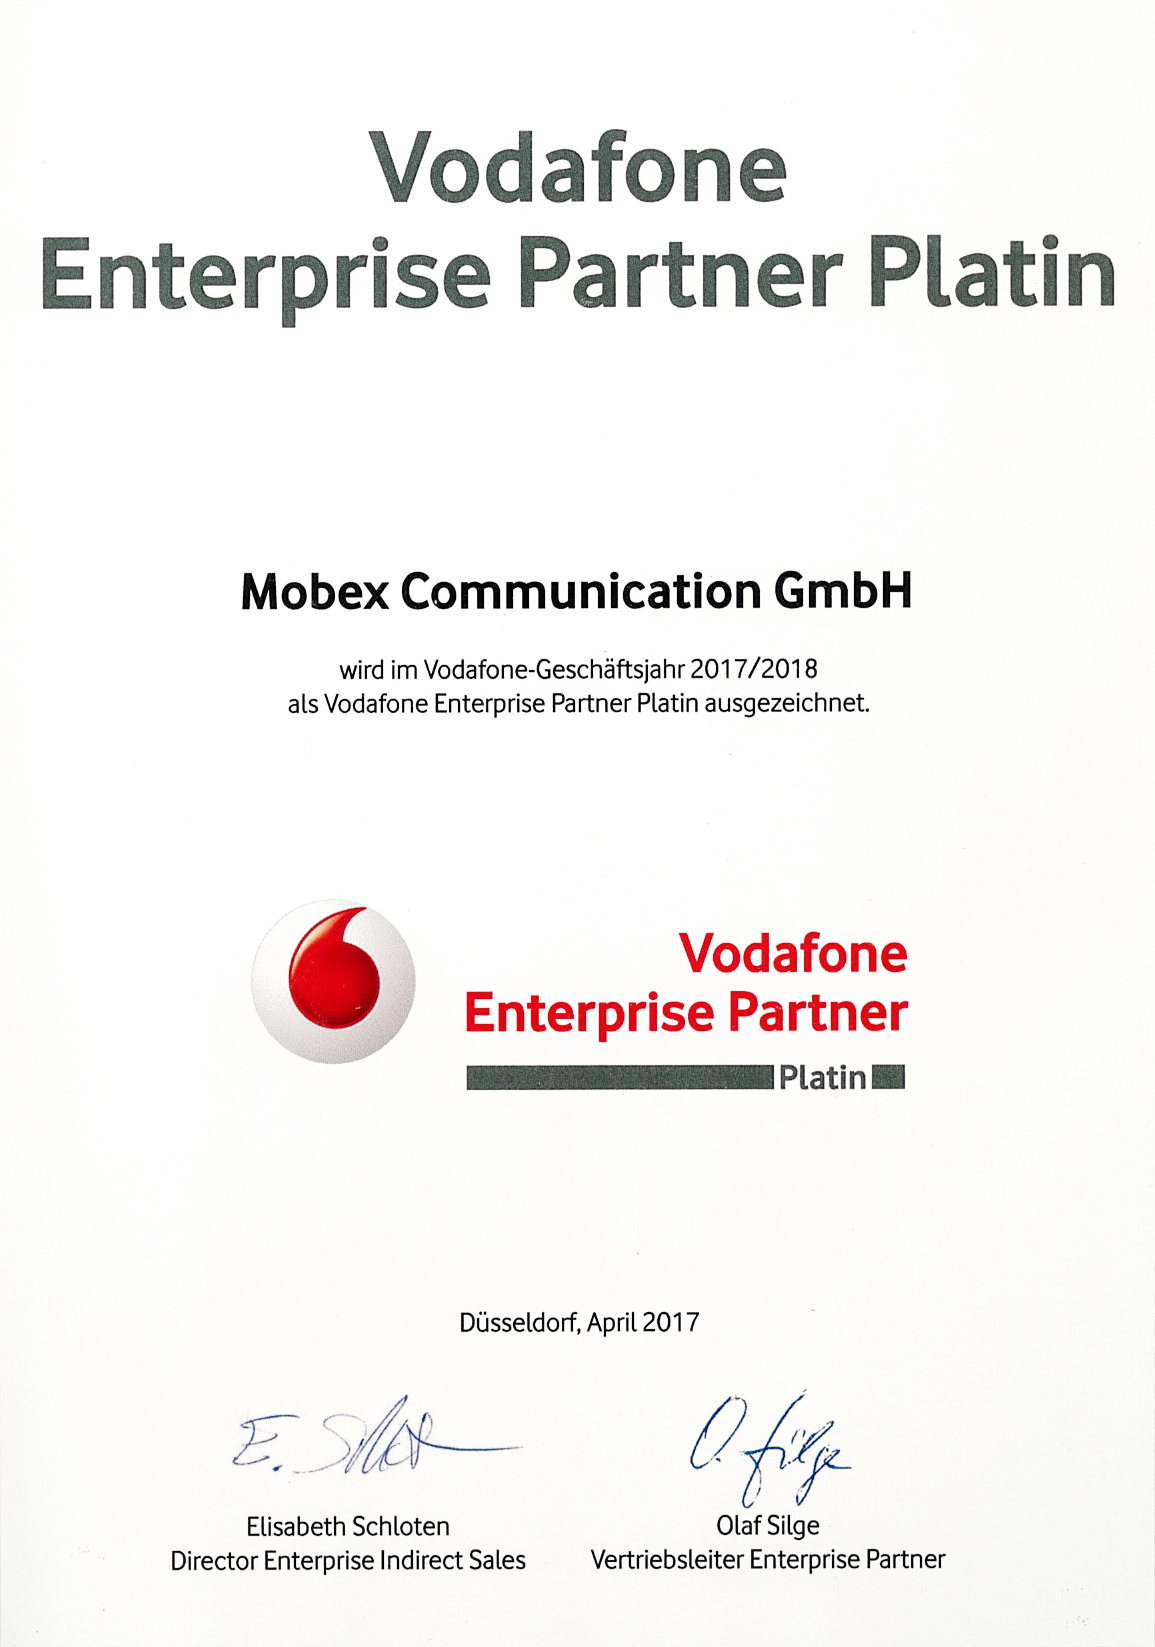 Vodafone Enterprise Partner 2017/2018